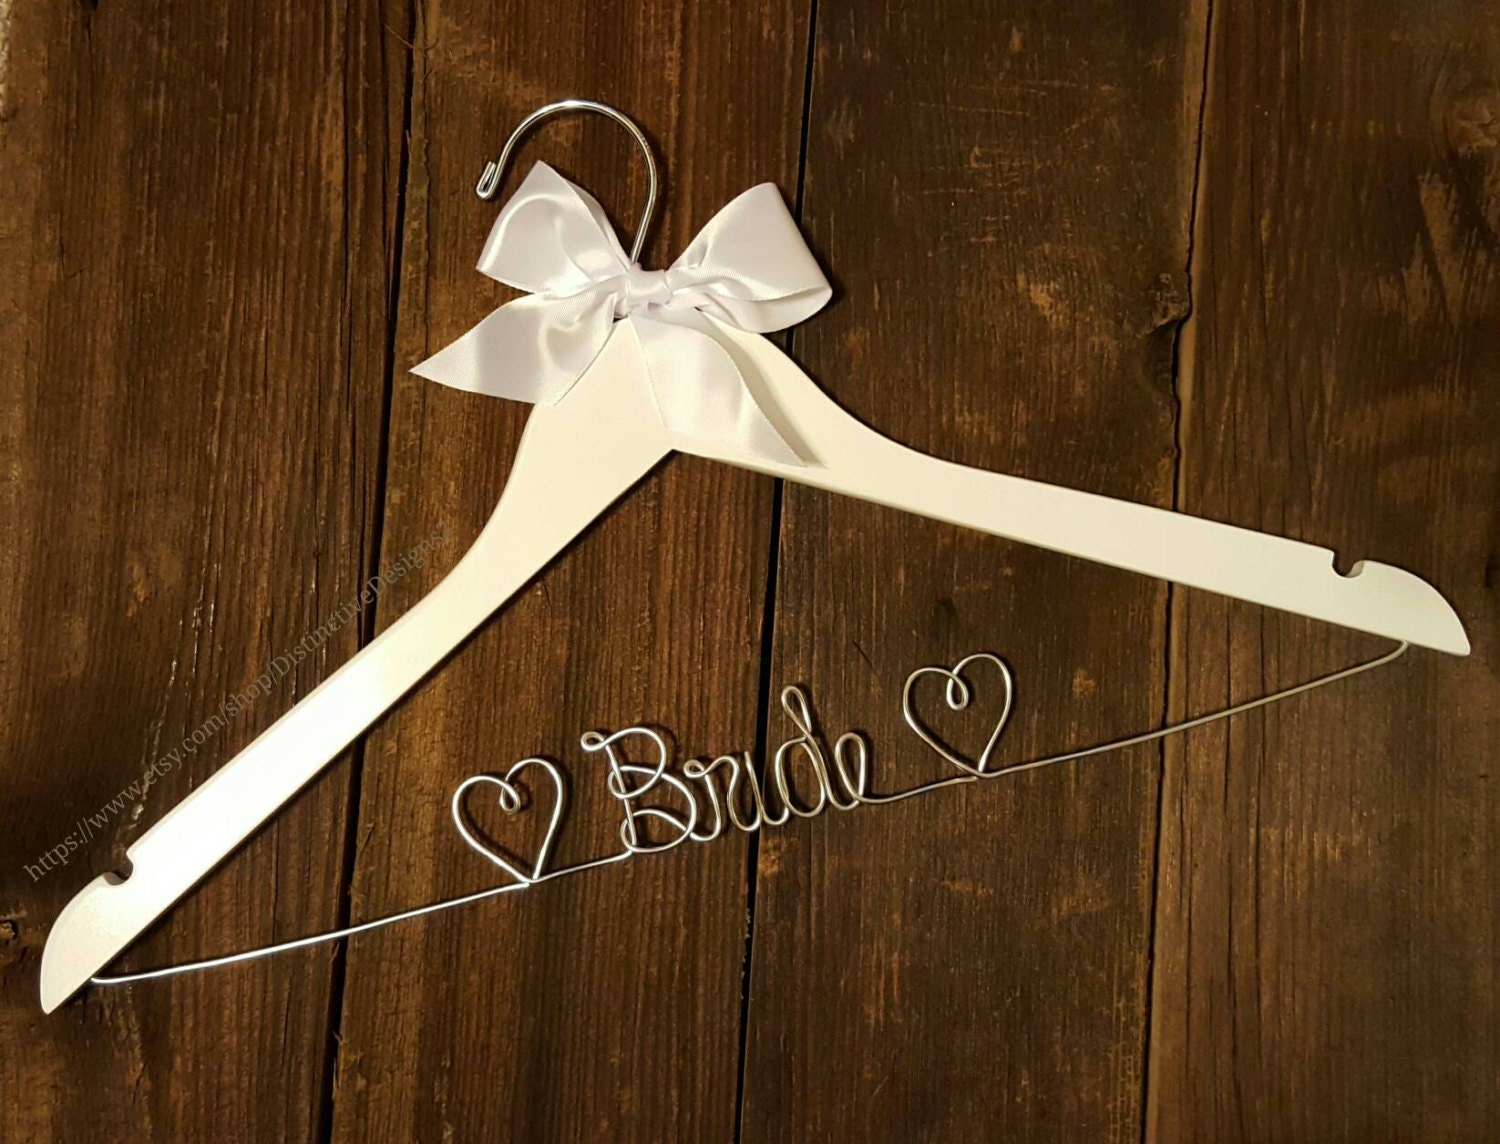 Bride hanger wedding dress hanger last name hanger mrs for Mrs hangers wedding dress